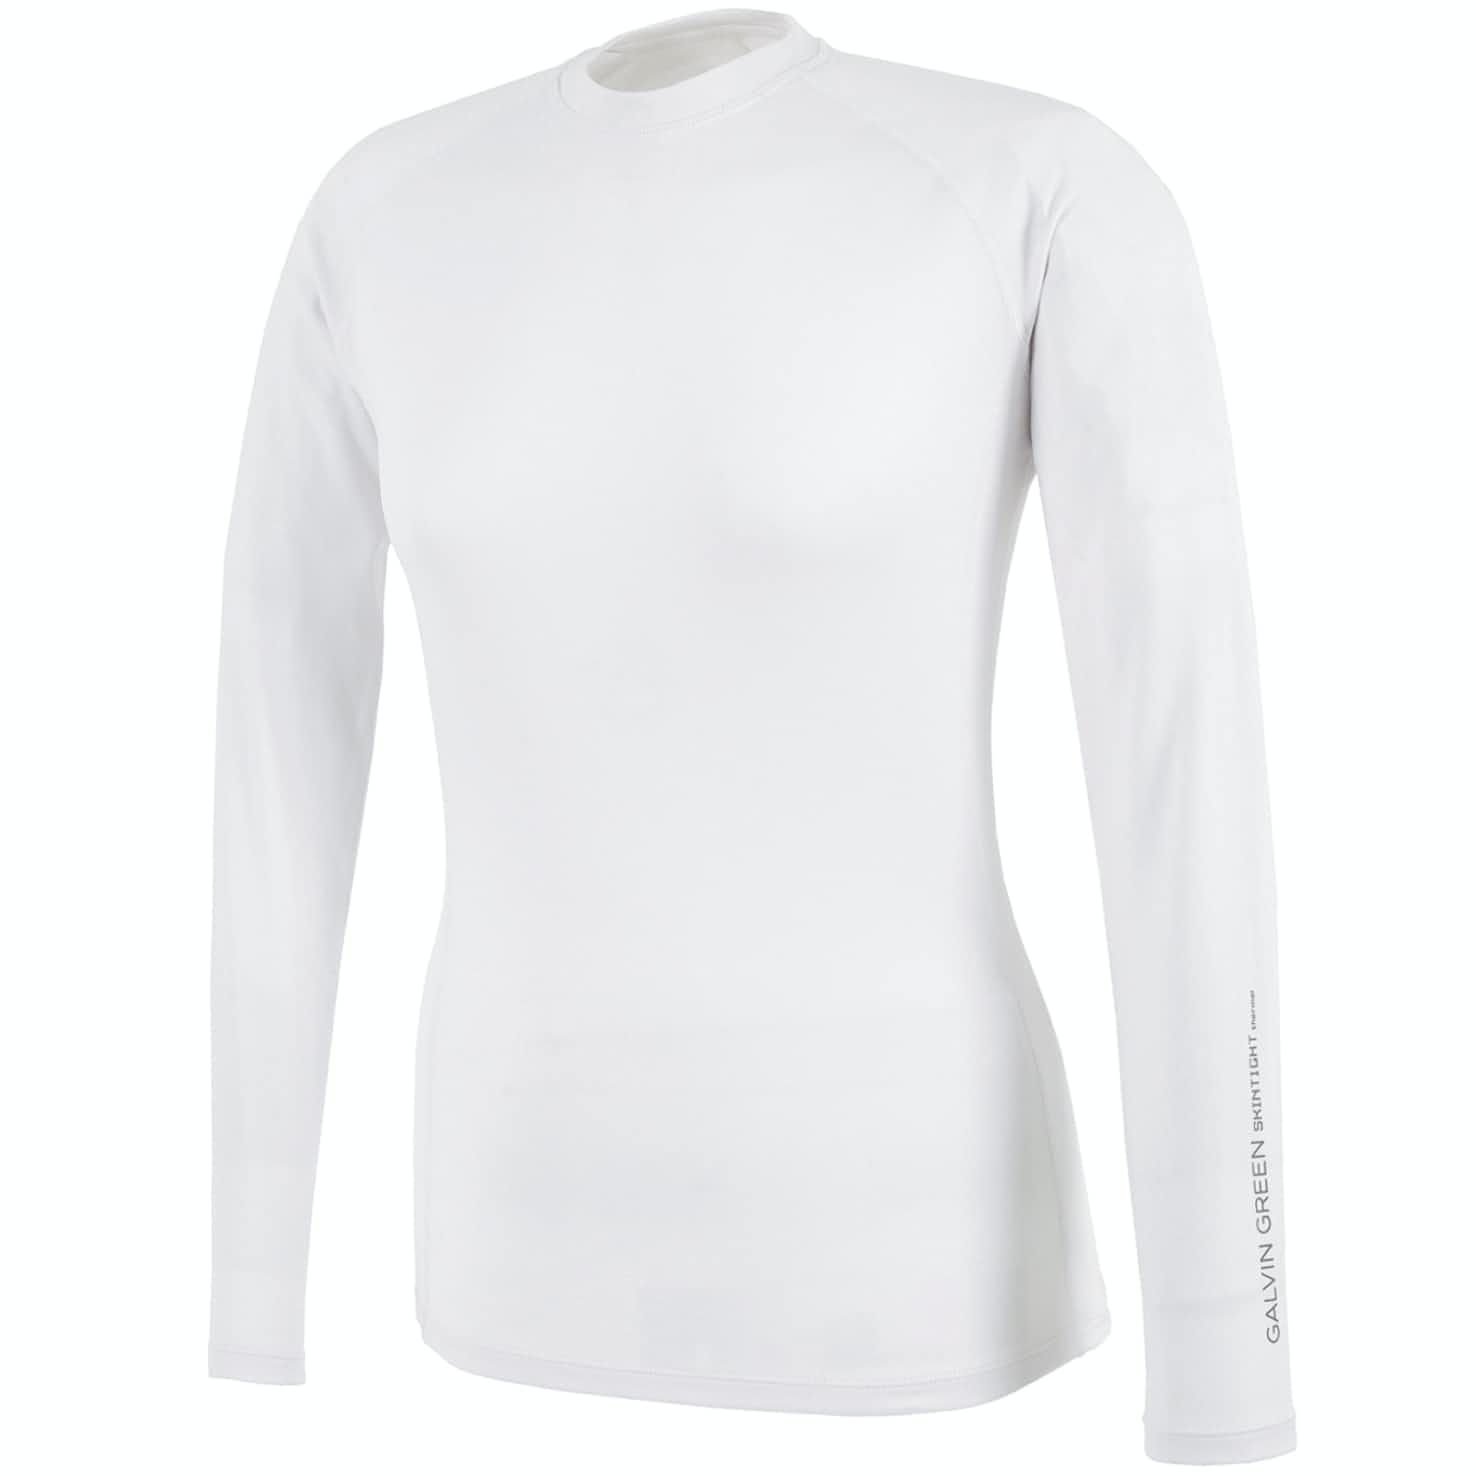 Womens Elaine Crew Neck Skintight Thermal White - 2020